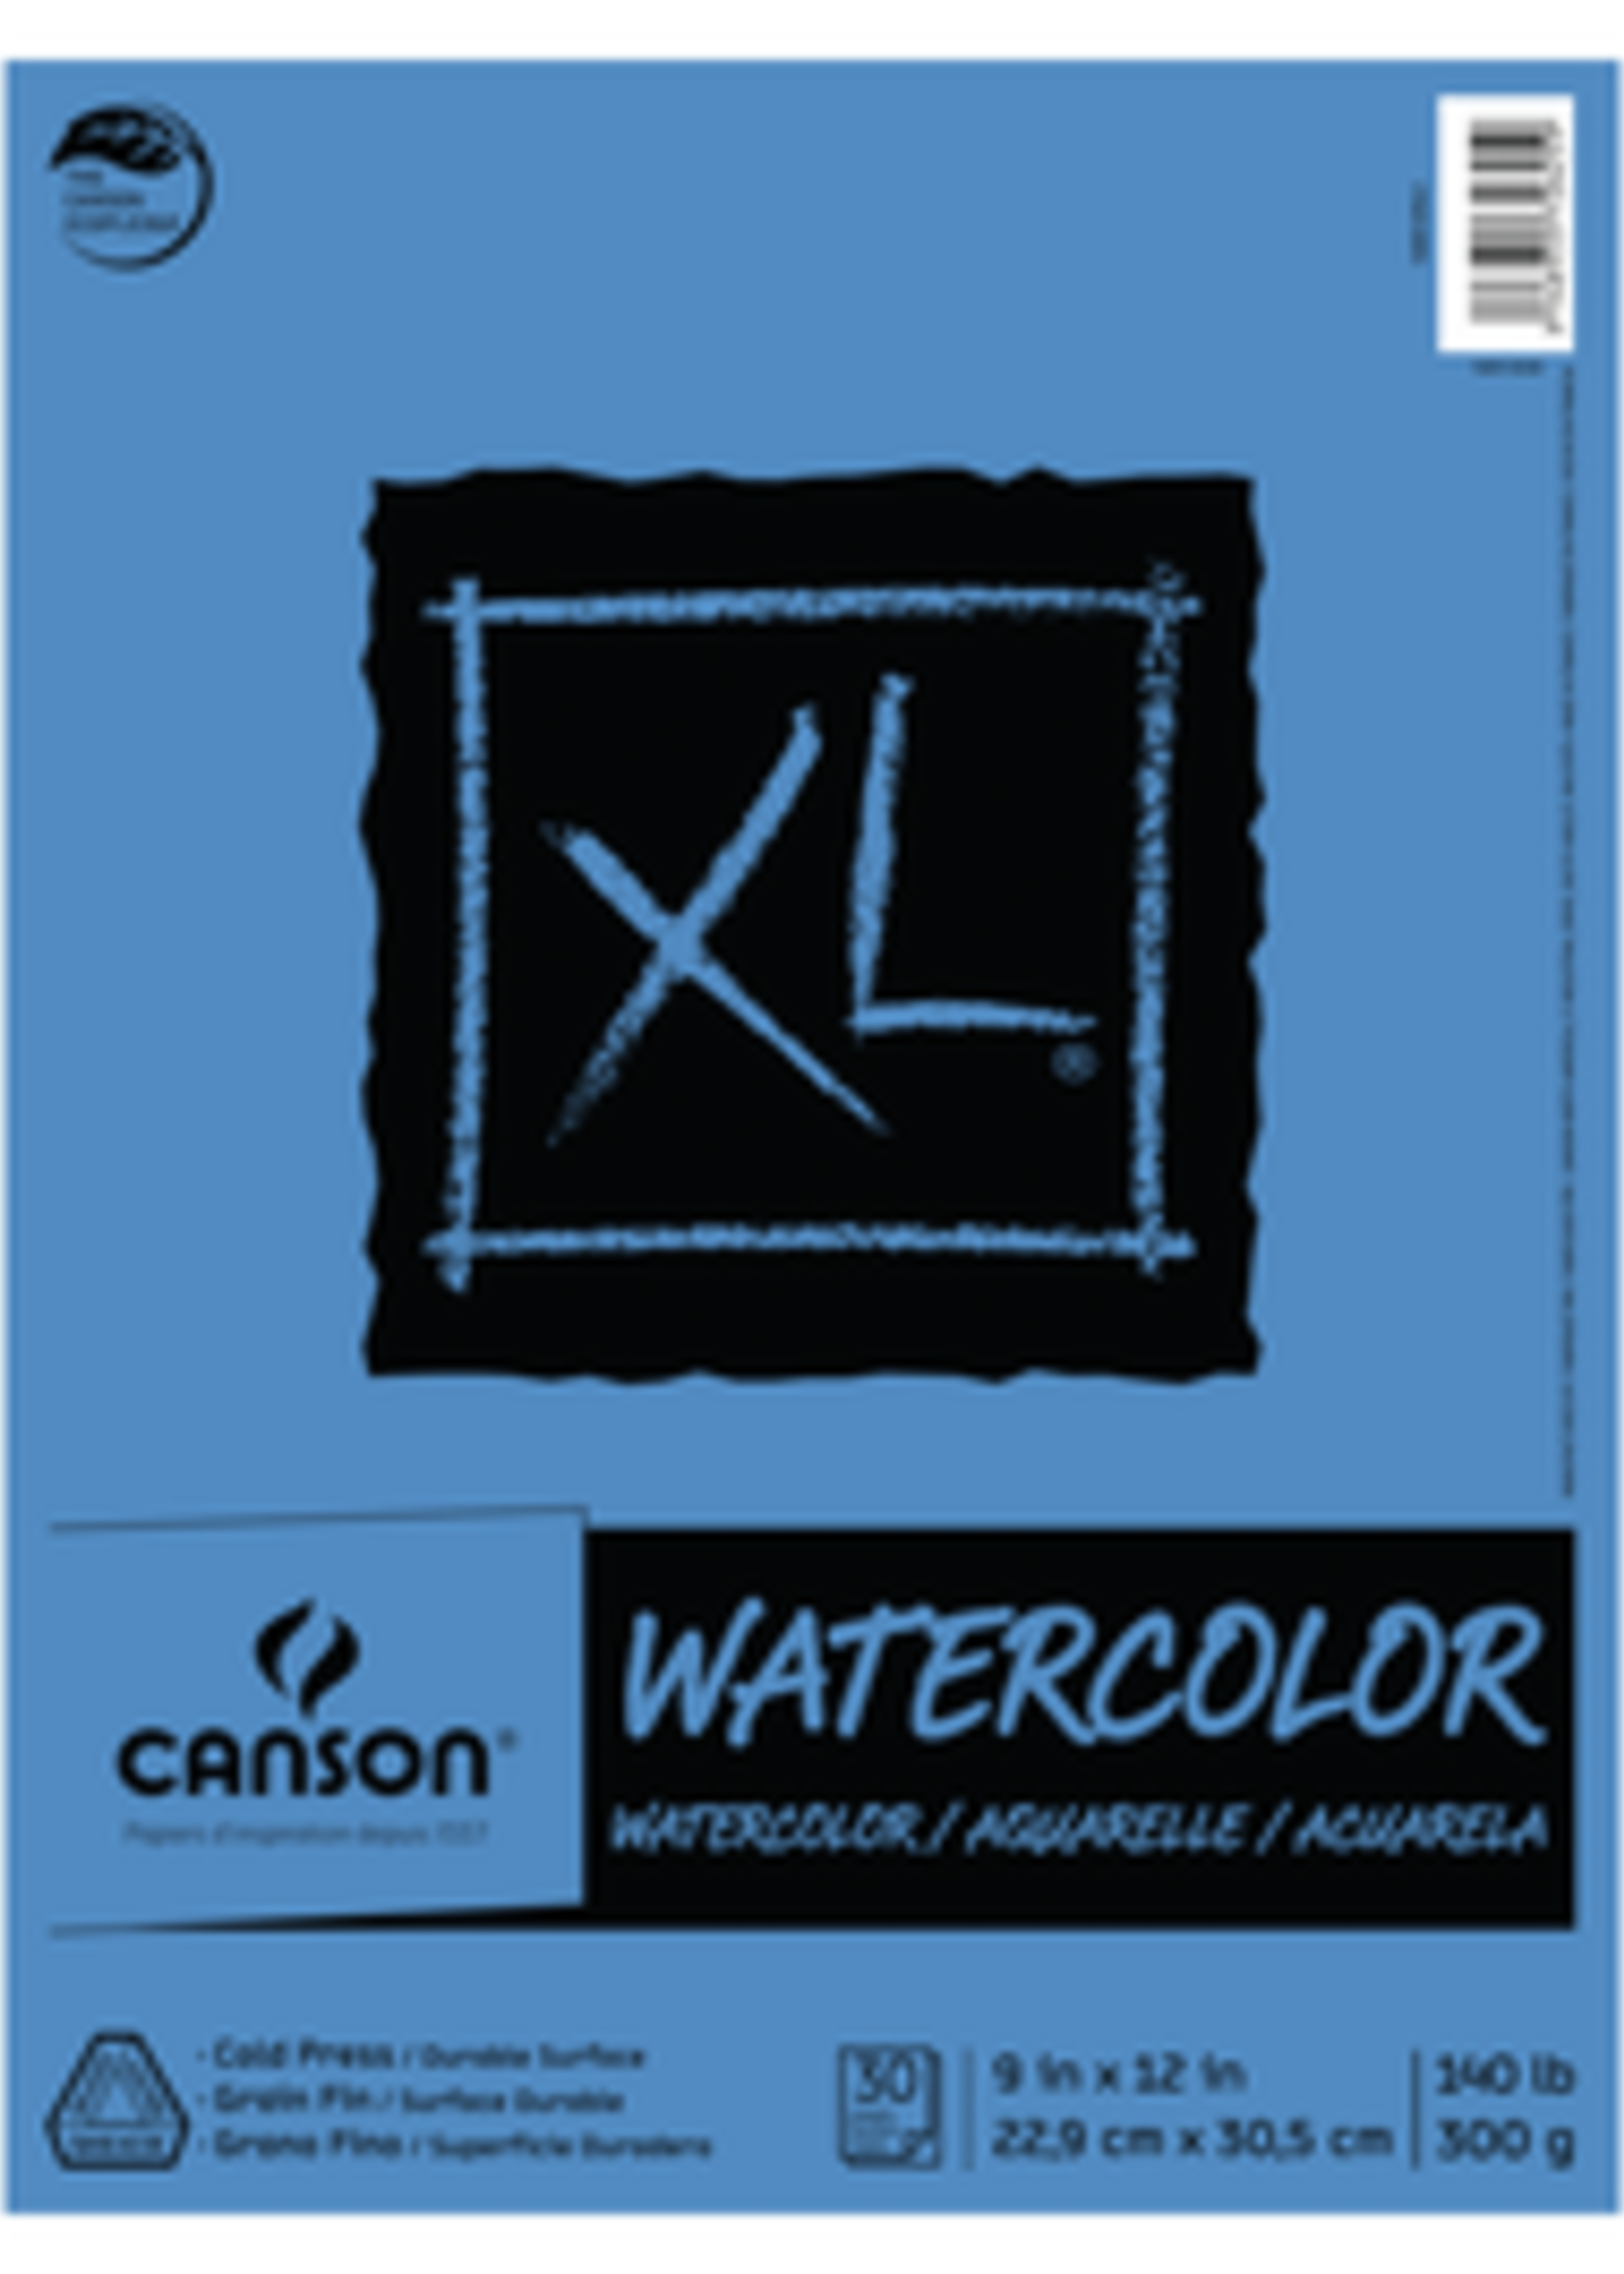 CANSON / PACON PAPERS XL WATERCOLOR PAD 30 SHEETS